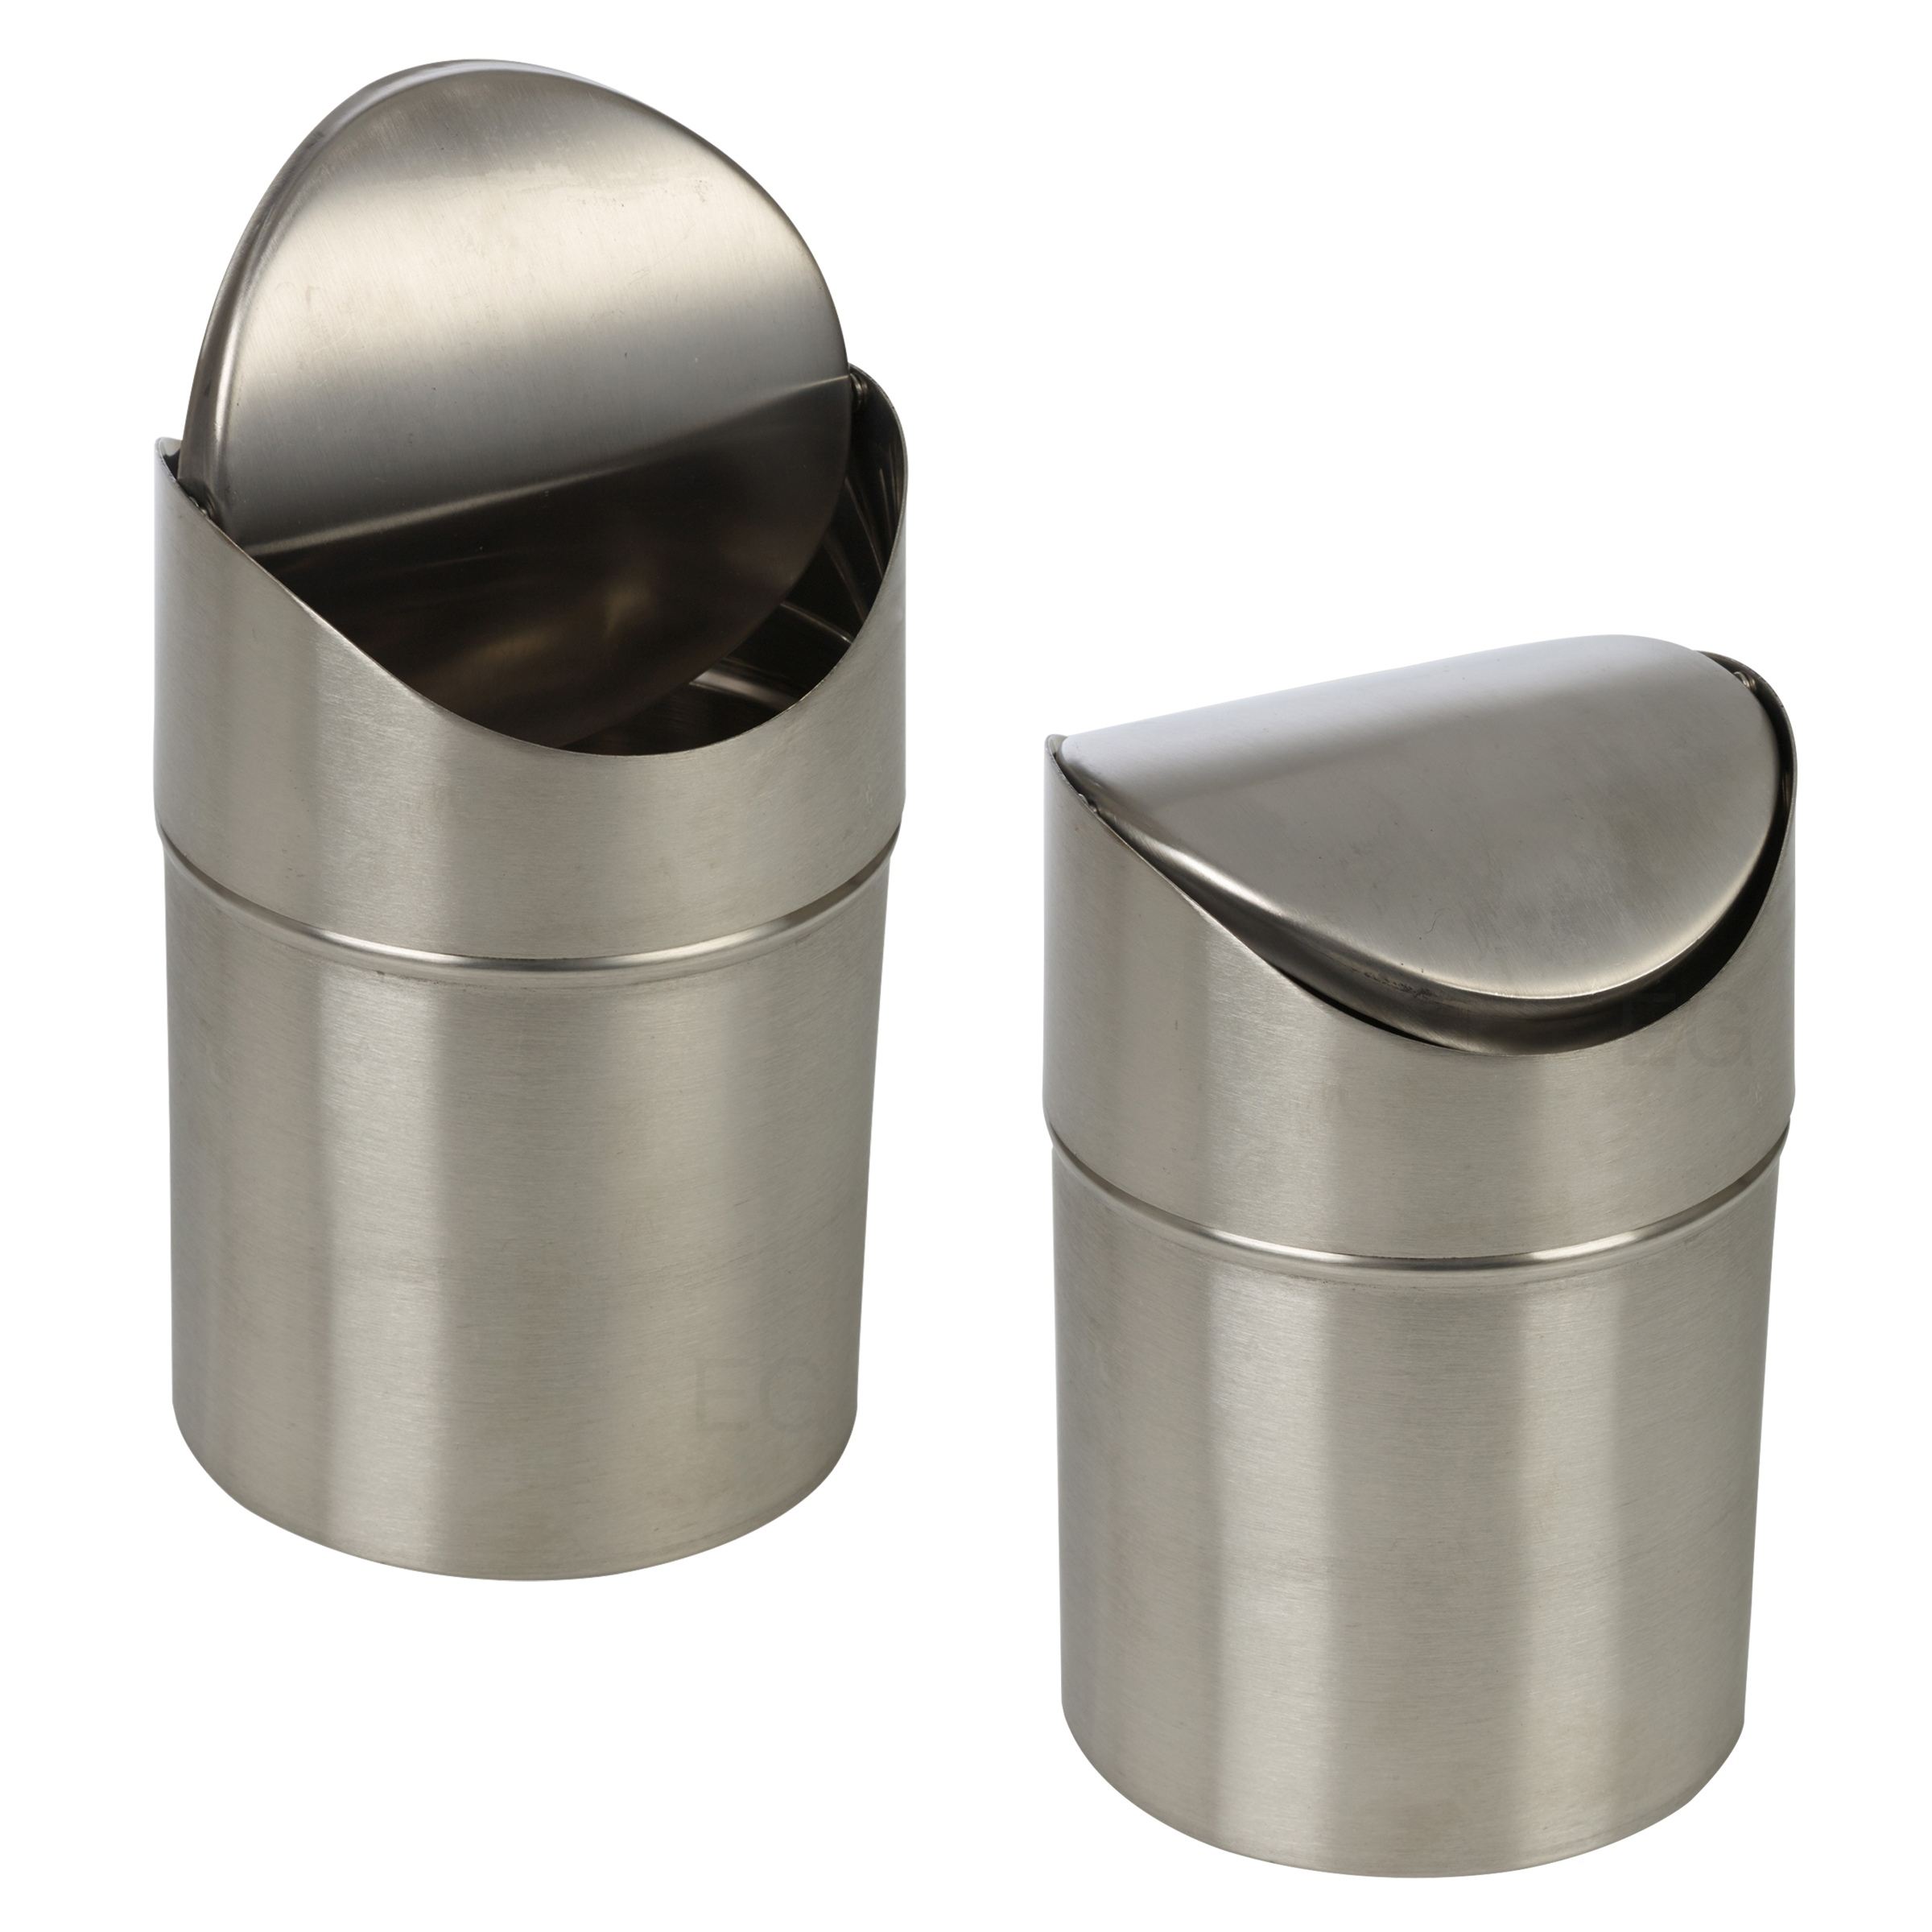 Small Bathroom Garbage Cans bathroom trash can bath can with lid bronze small stainless steel